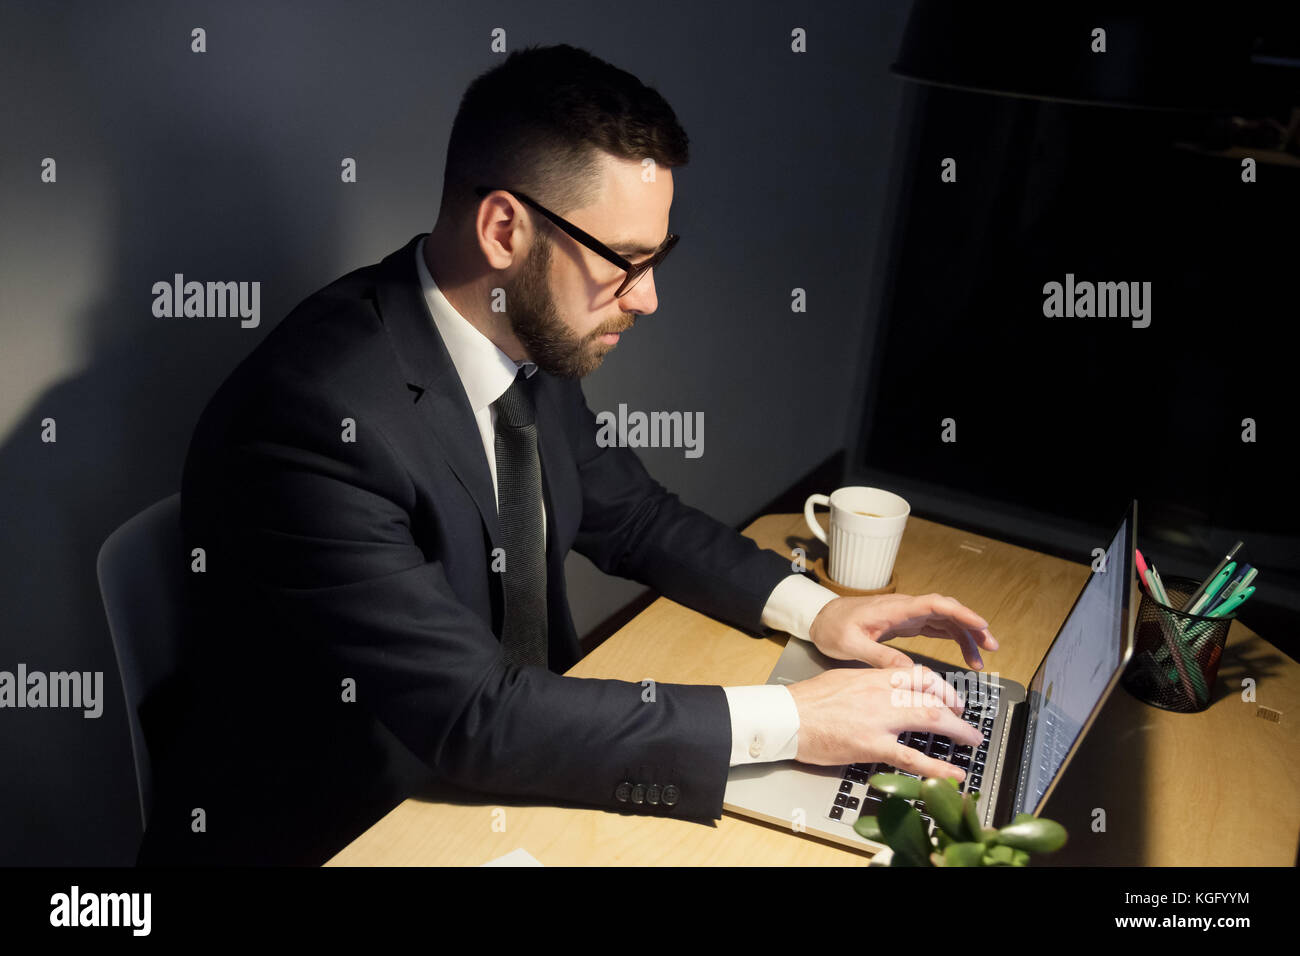 Attentive bearded man in glasses working on project late at night, typing messages, writhing emails using laptop - Stock Image